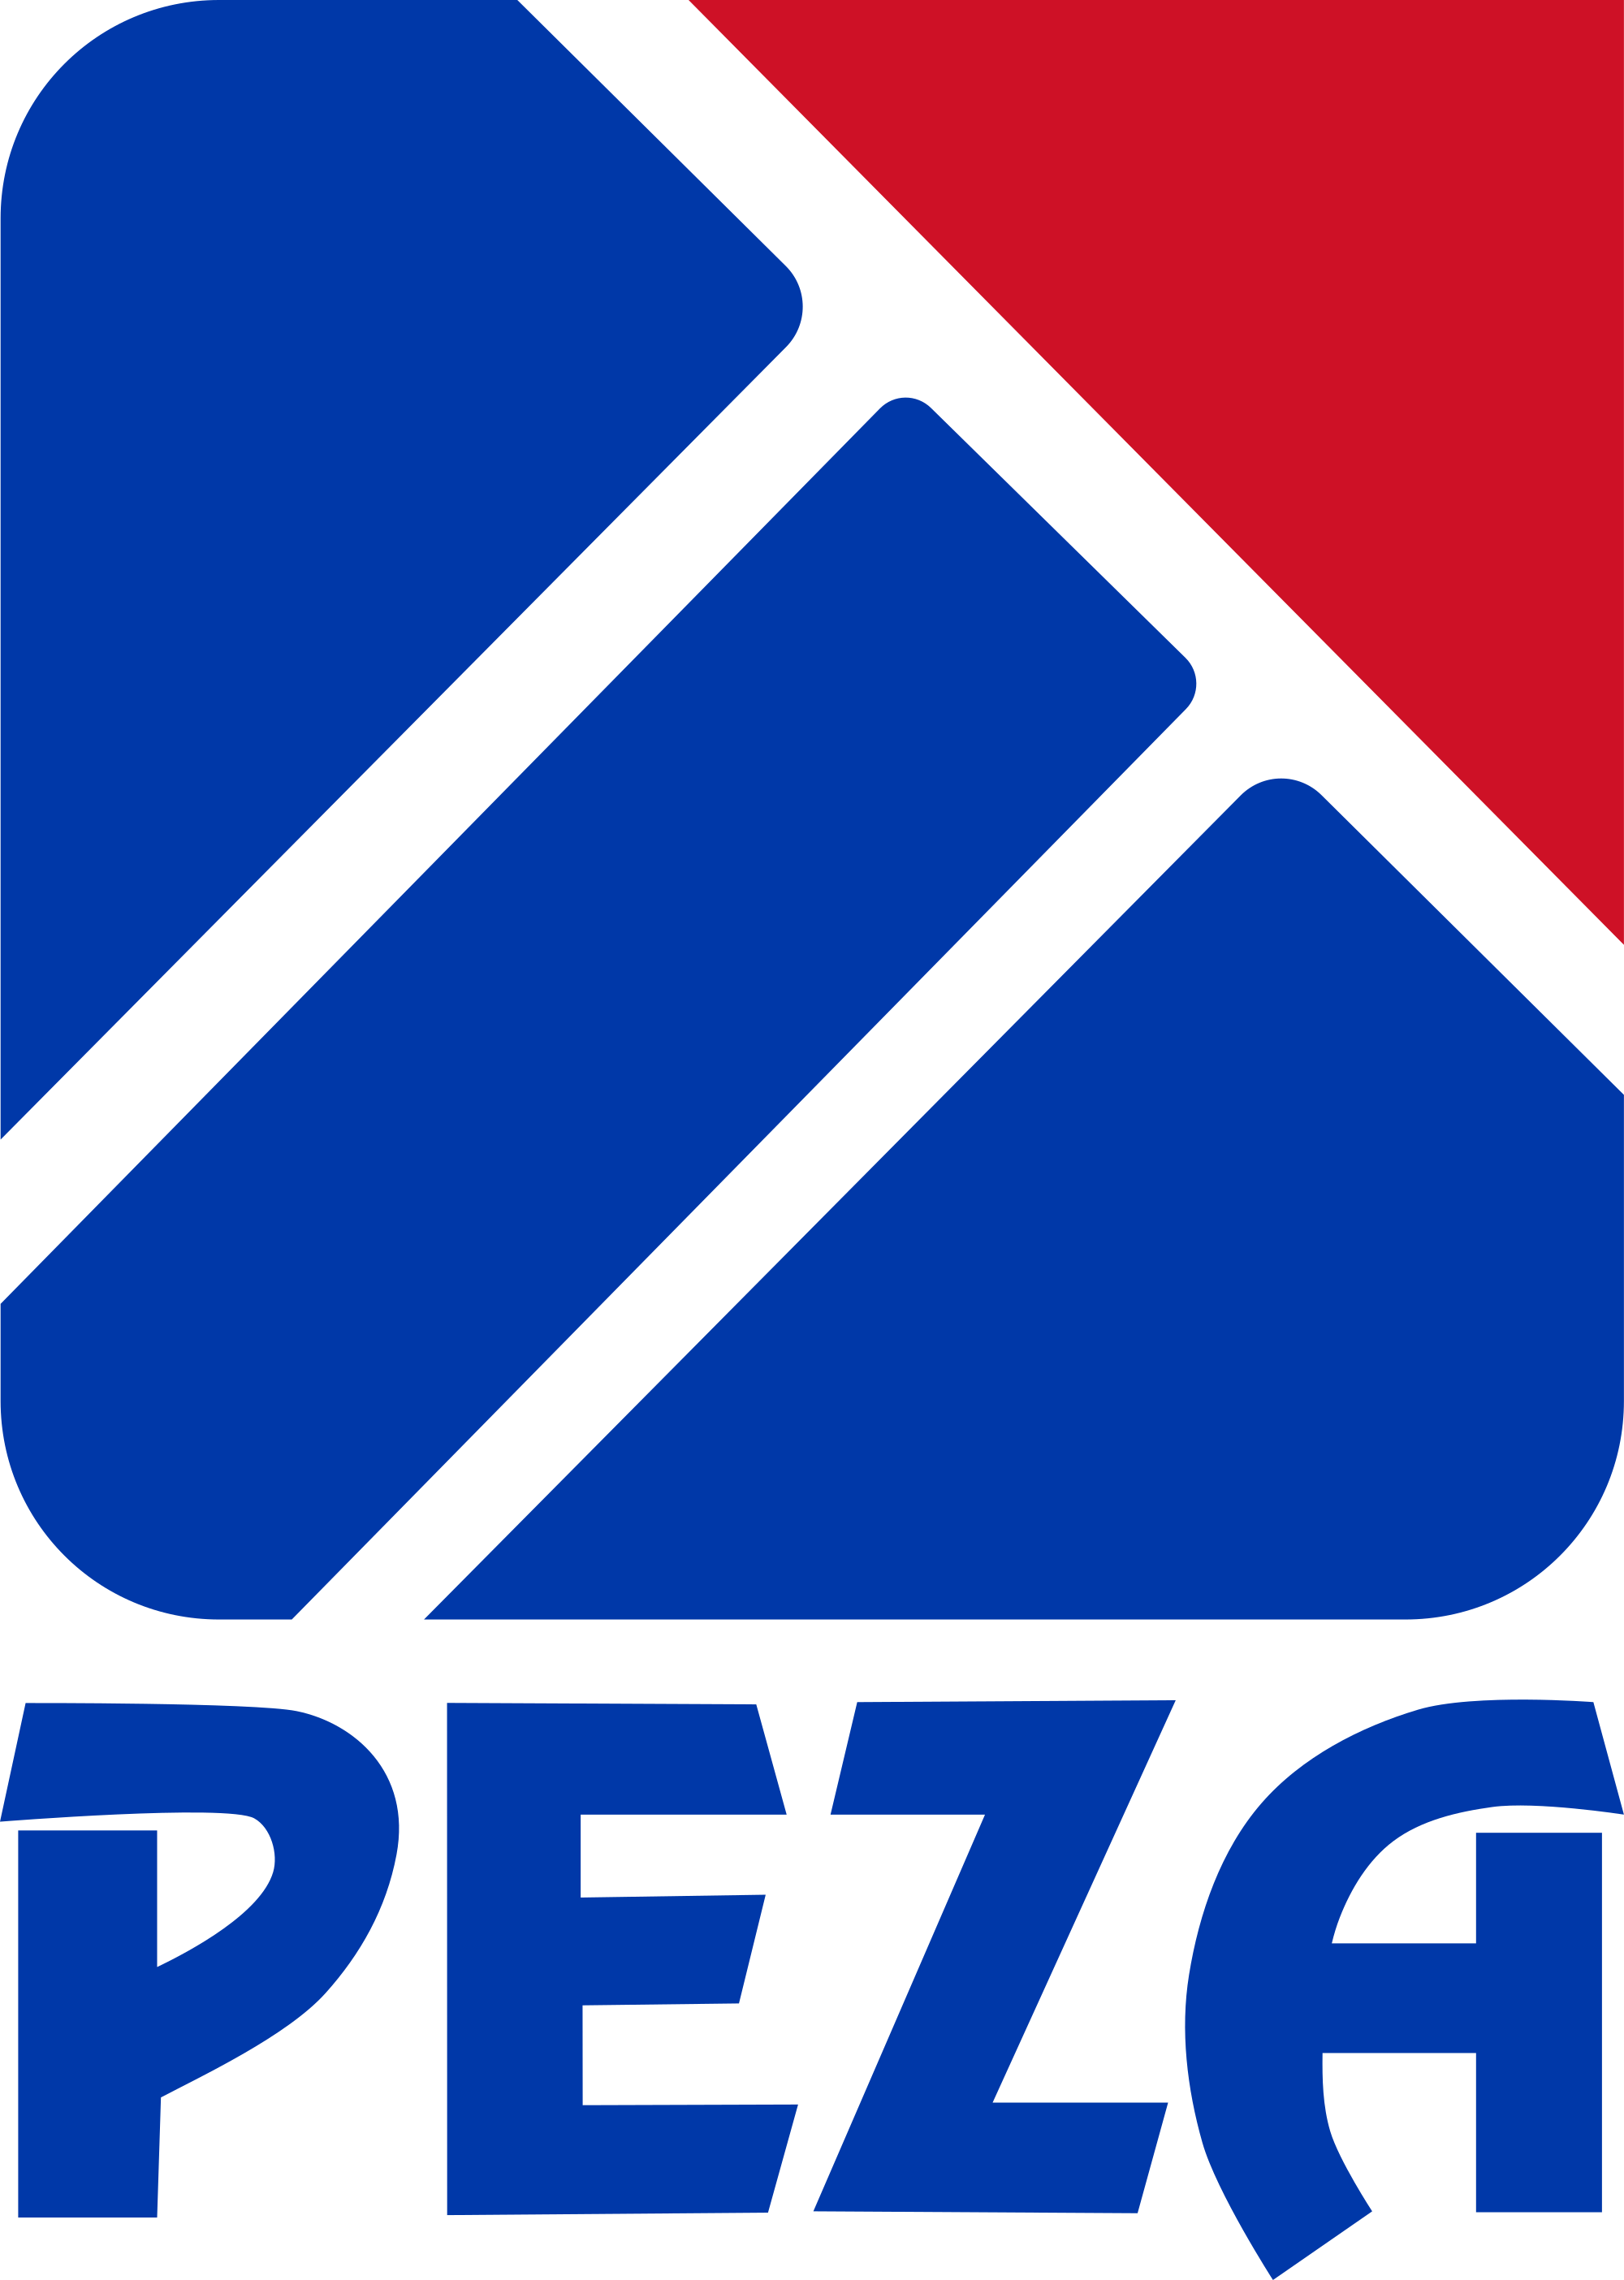 Under DG Plaza, PEZA Remits Php1.8-B in 3 Years